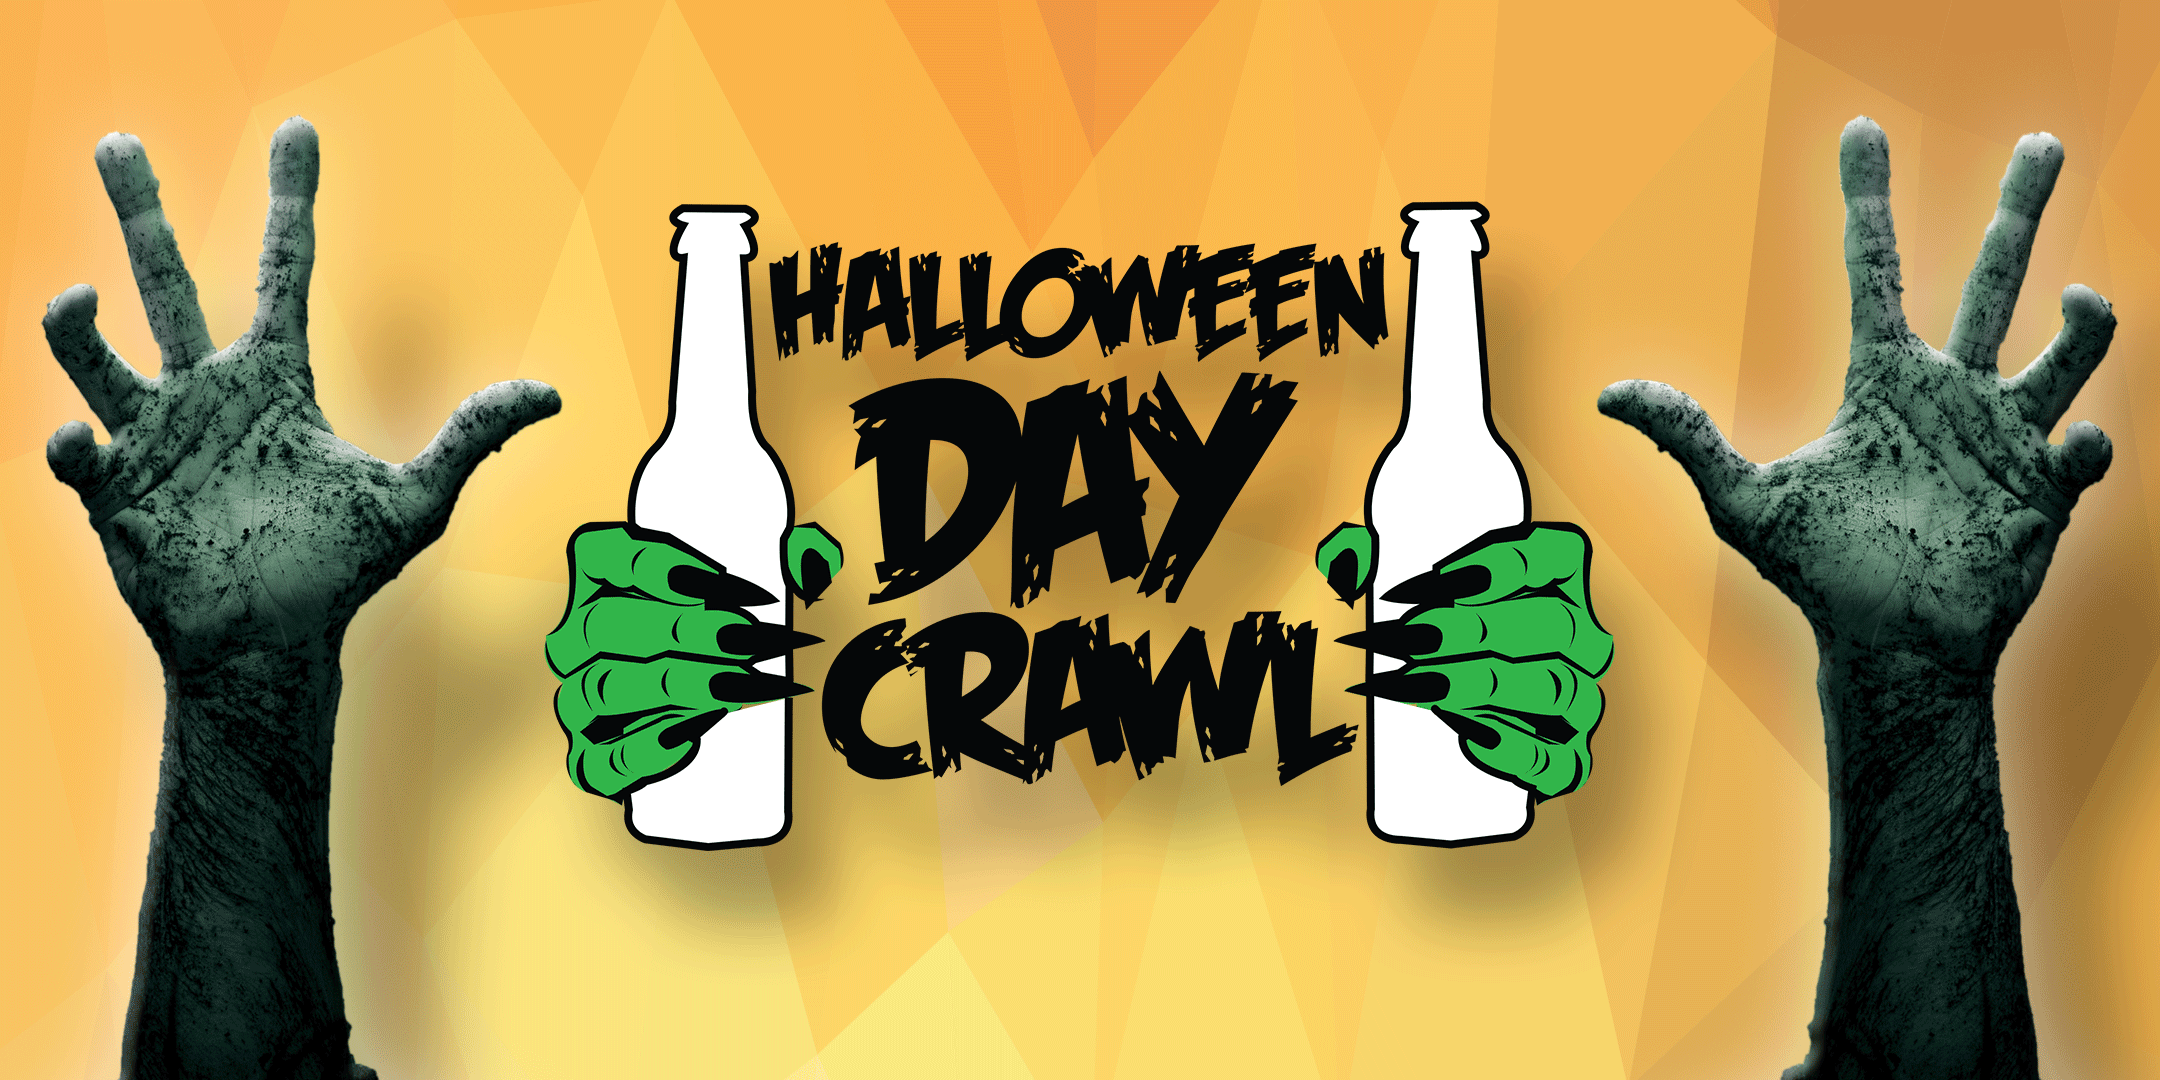 Fireball Halloween Bottle October 2020 Halloween DAY Crawl   Sat. Oct. 31st in River North   Chicago   31